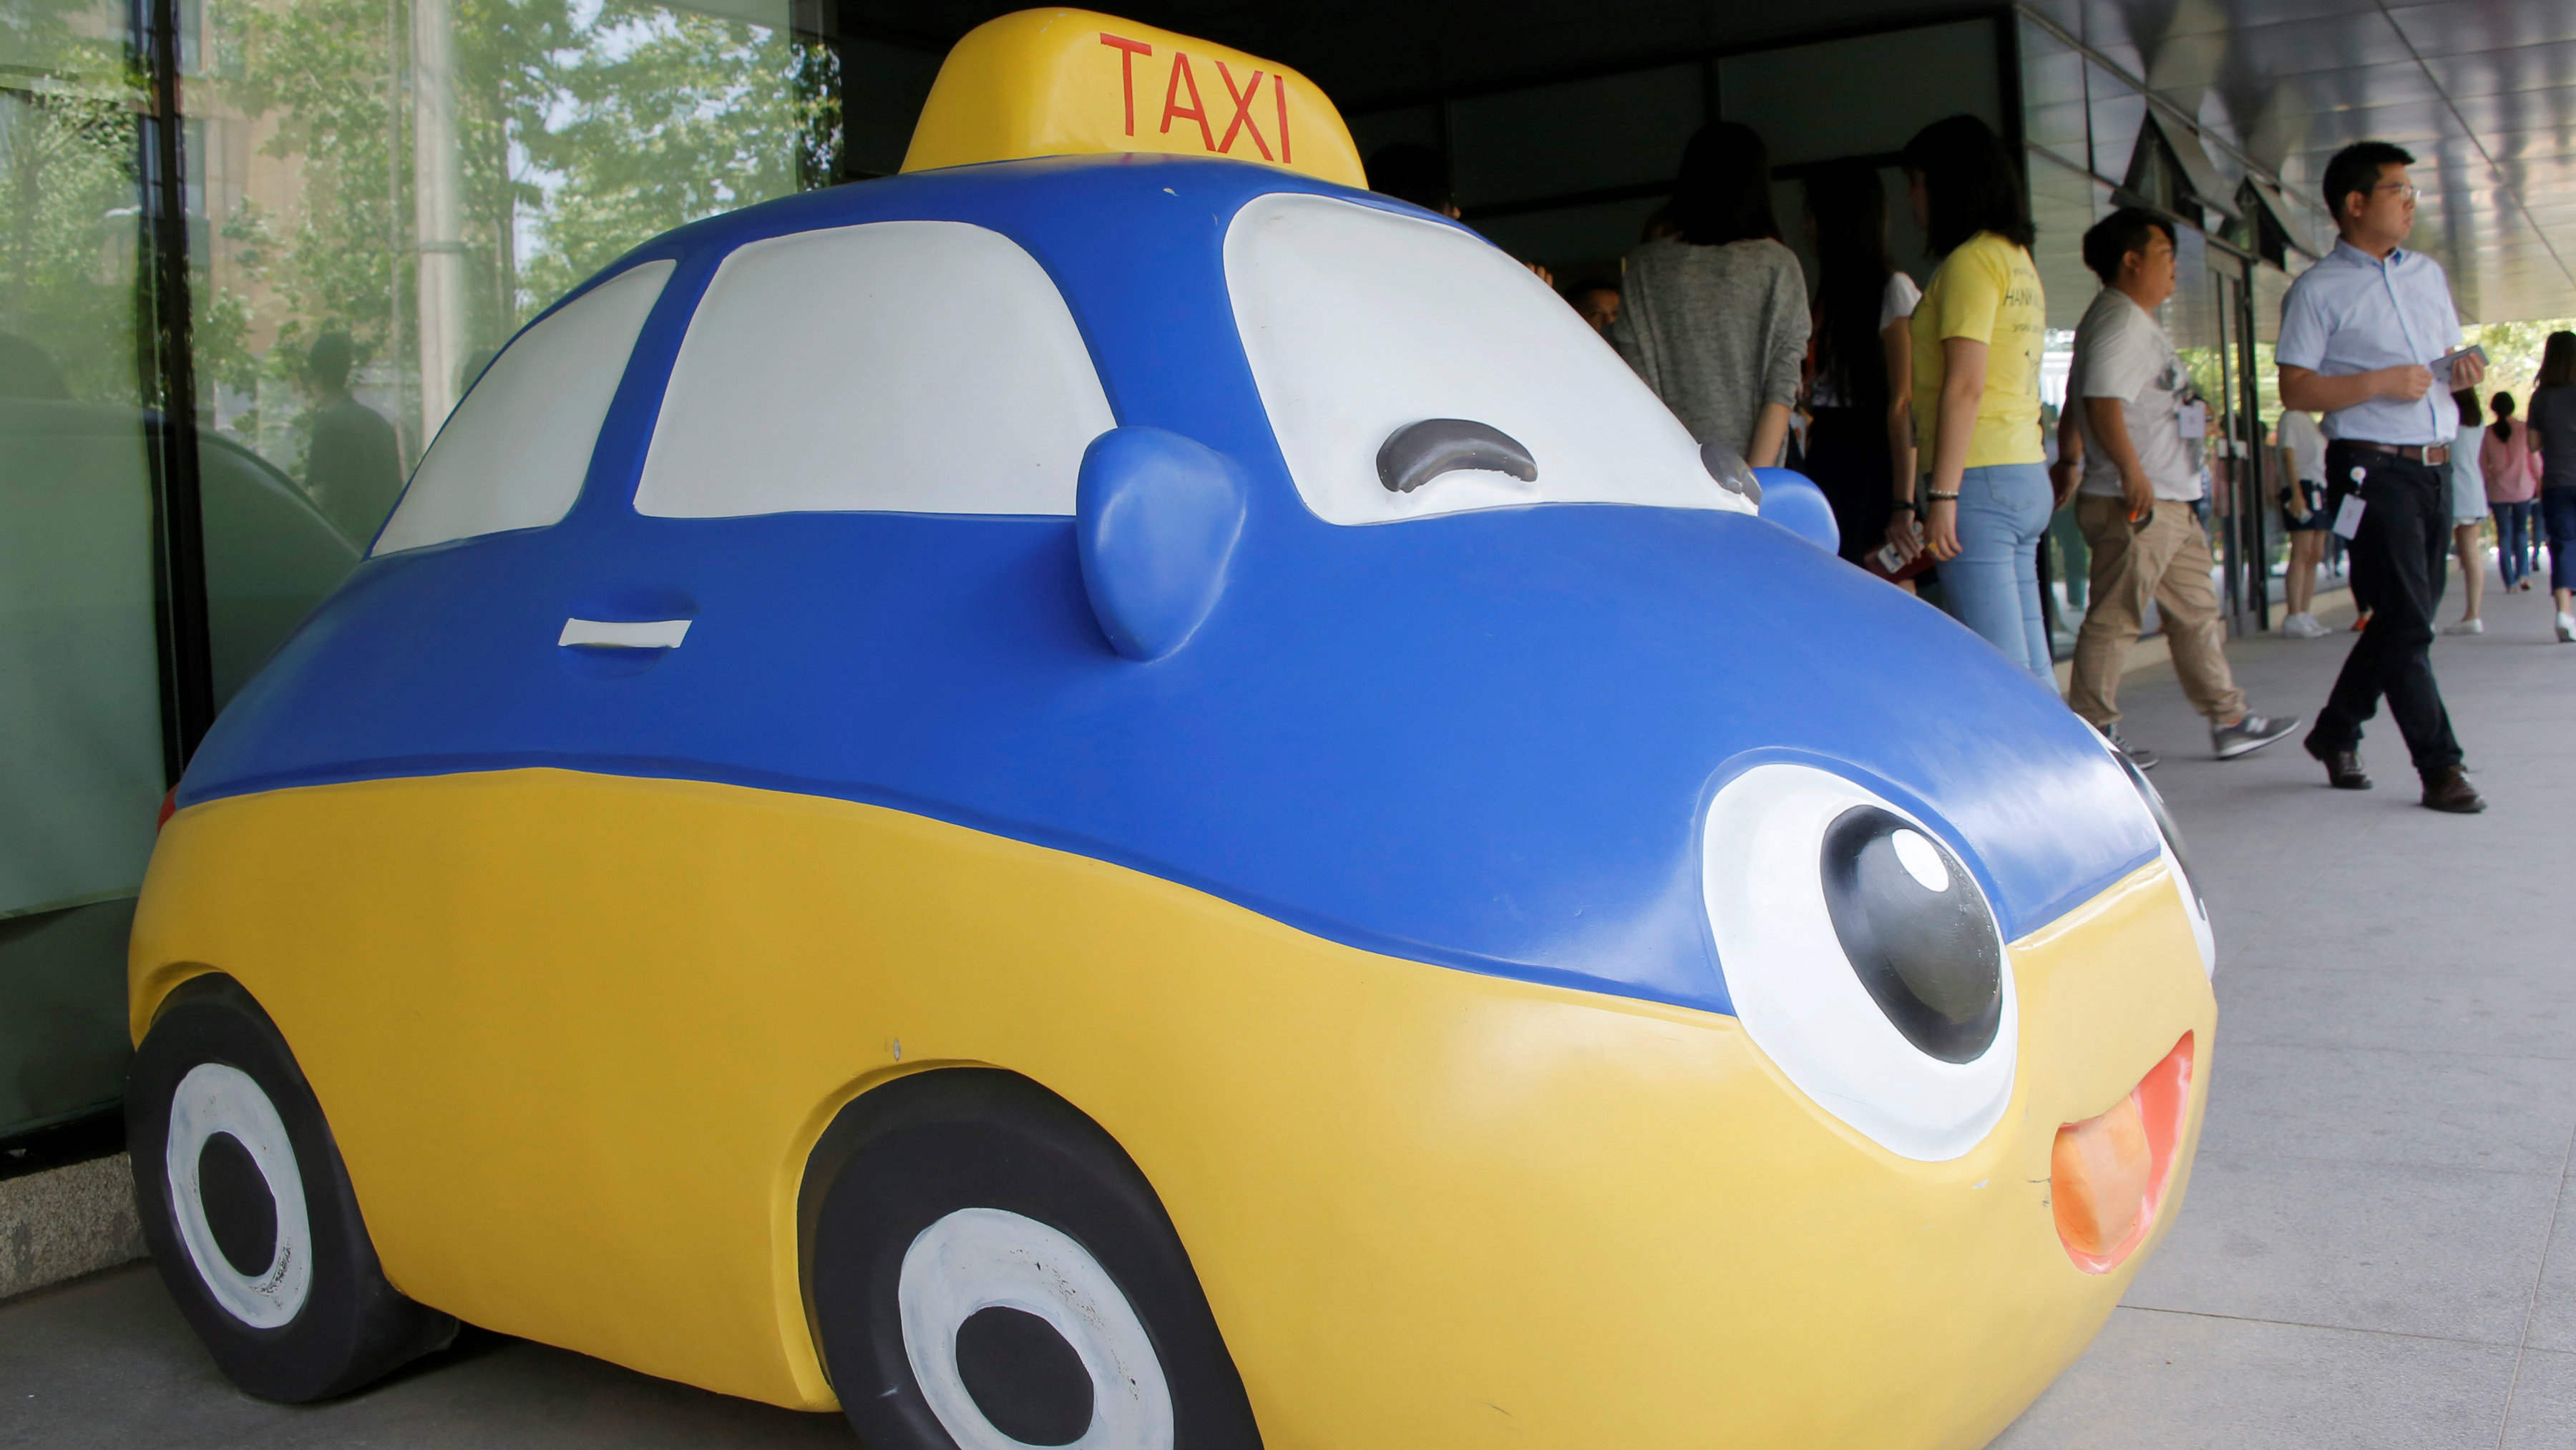 Didi Chuxing's former mascot outside the company's headquarters in Beijing.